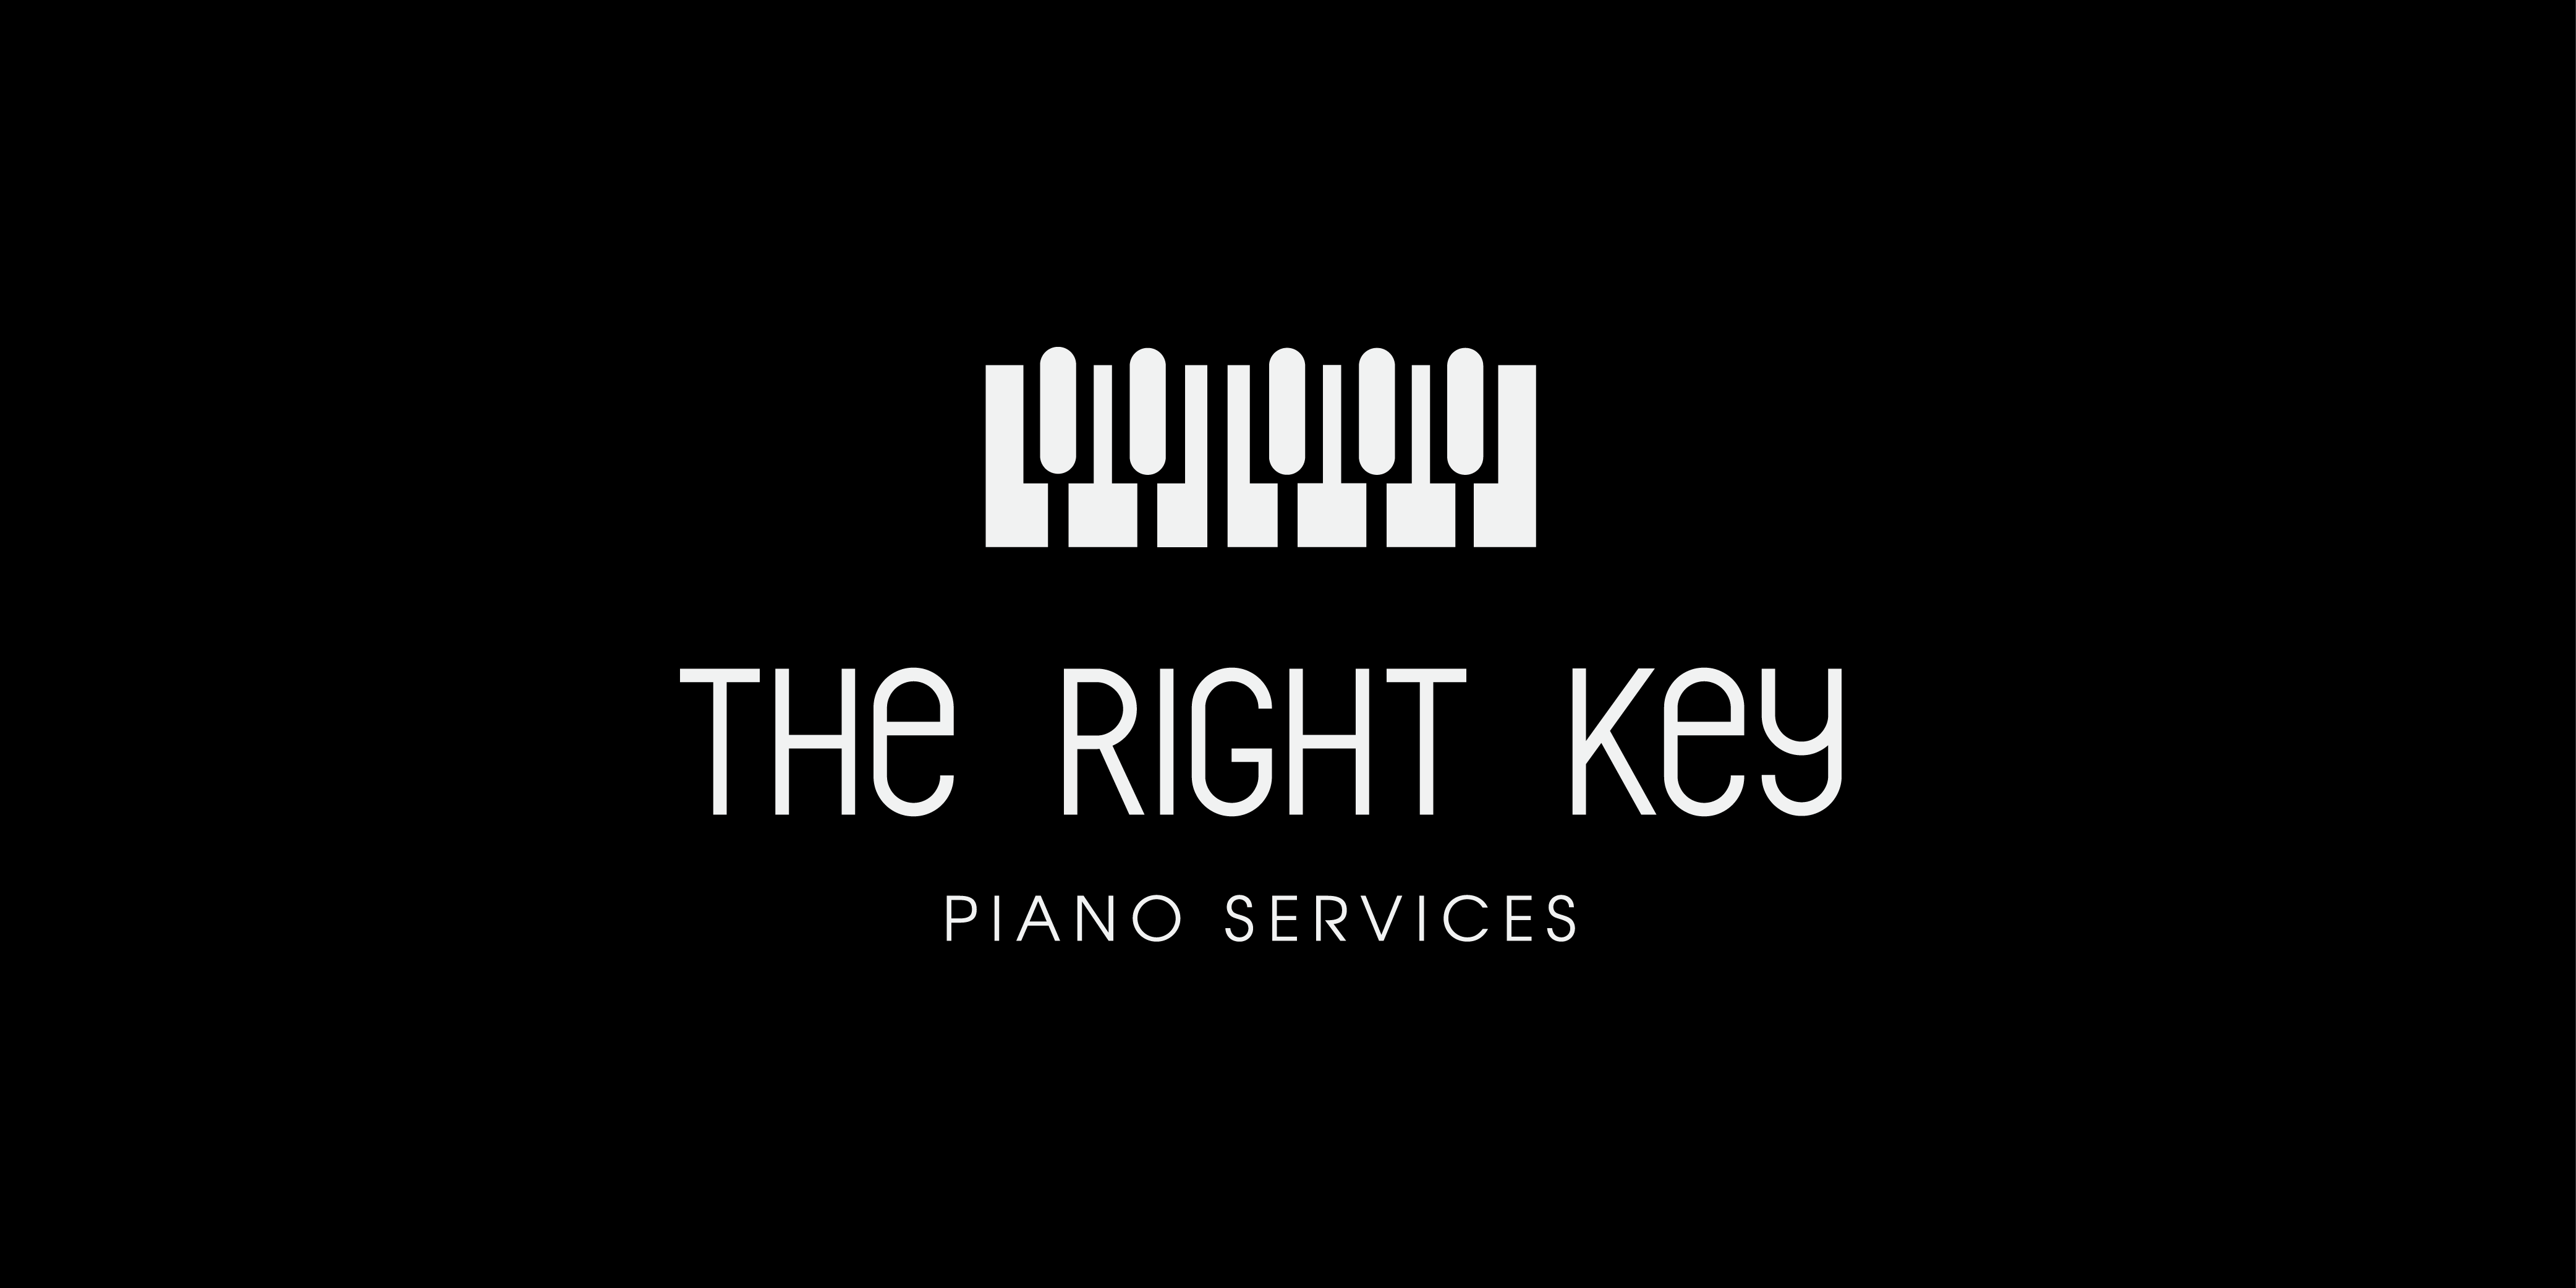 Piano Tuning, Repairs, More